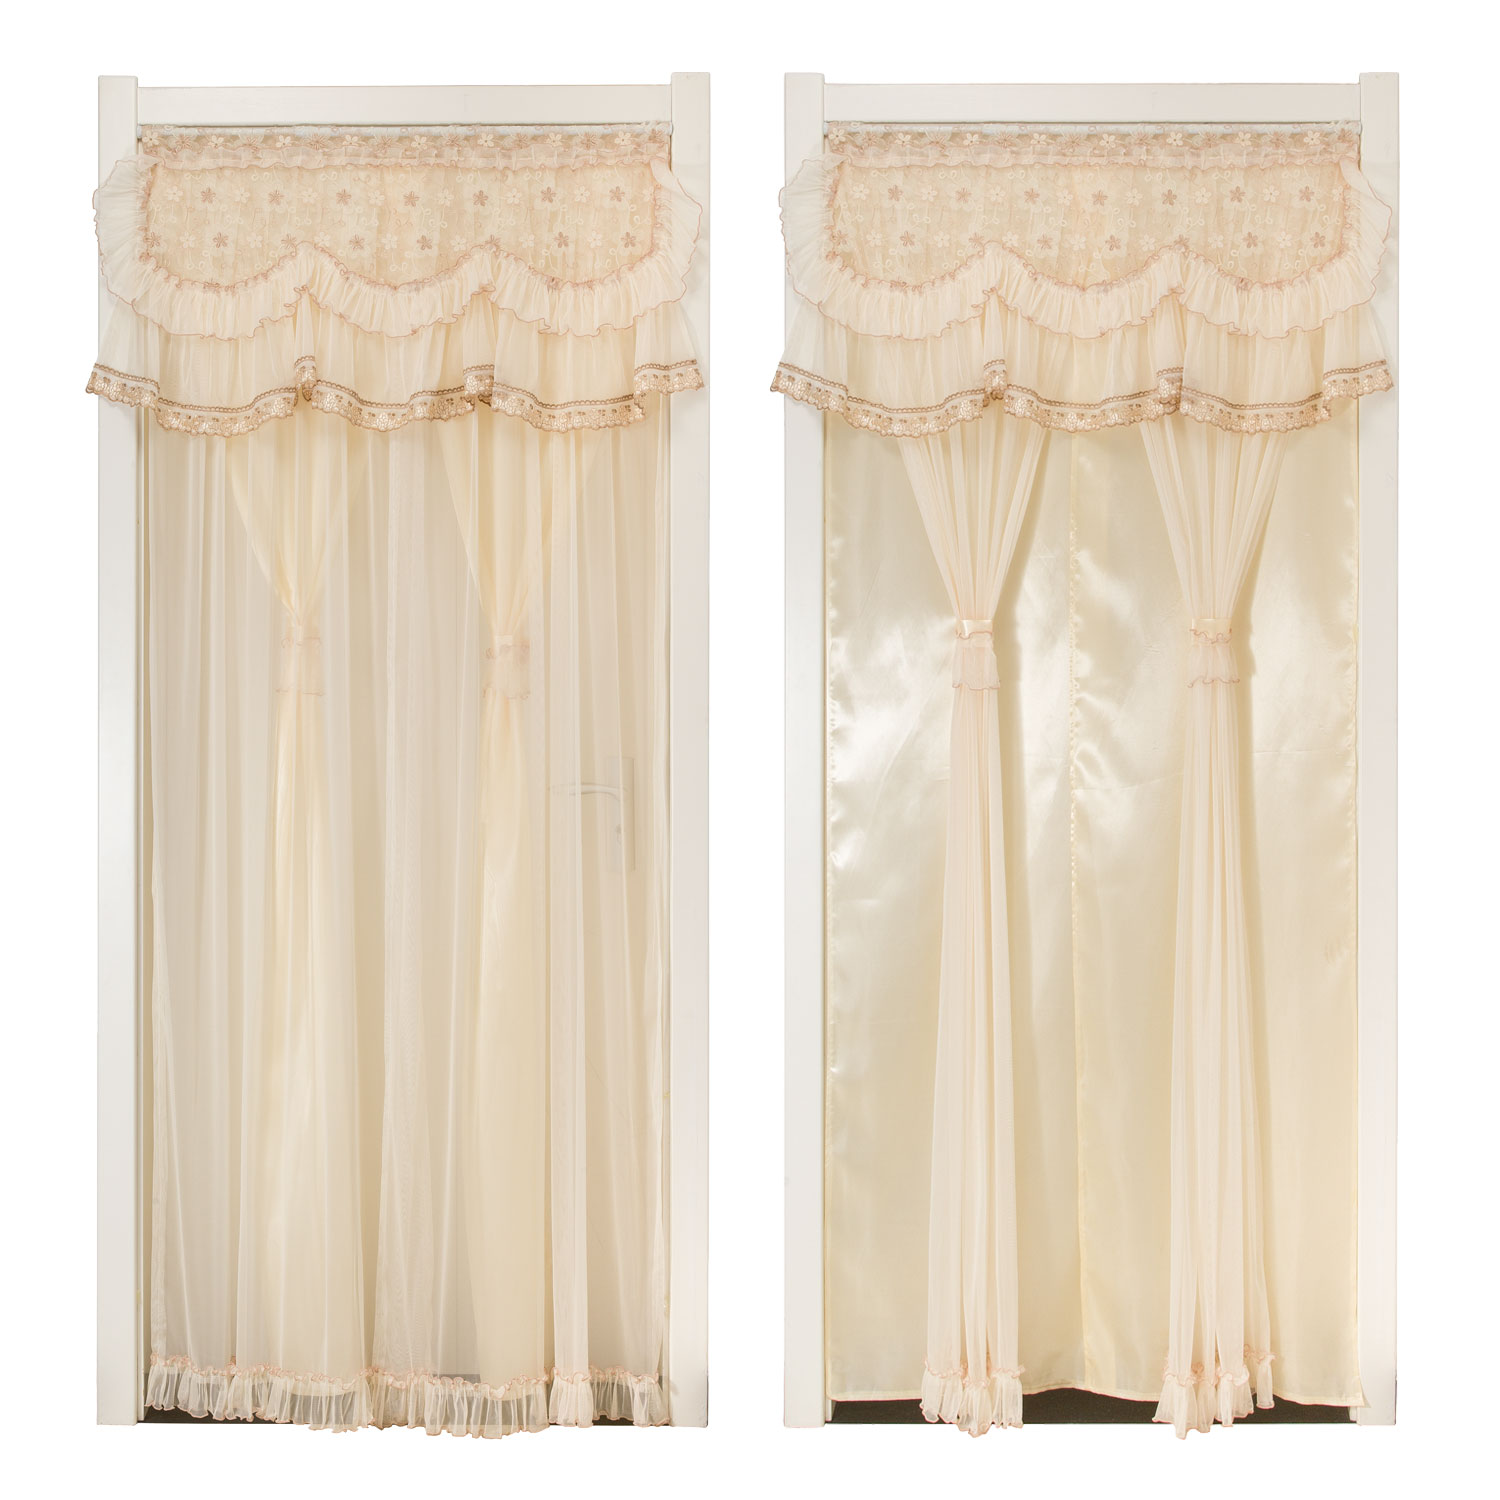 Privacy Curtain For Bedroom Curtain Fabric Pastoral Partition Curtain Bedroom Kitchen Bathroom Lace Double Feng Shui Curtain Privacy Curtain Can Be Customized